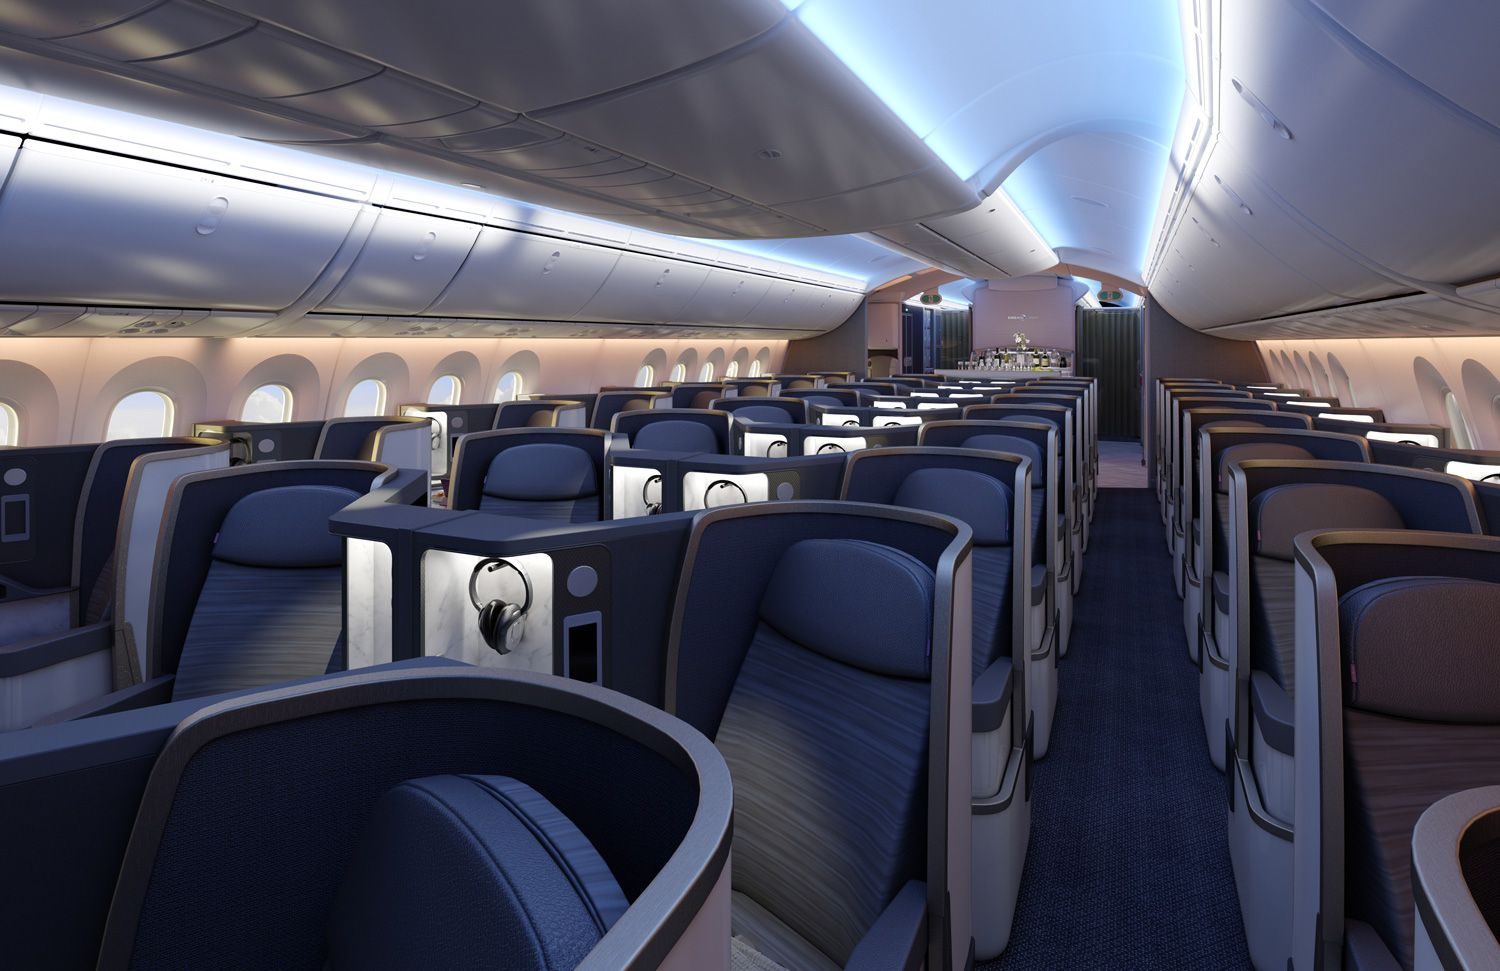 Boeing 787 interior | Vehicle interior design | Pinterest | Aircraft ...